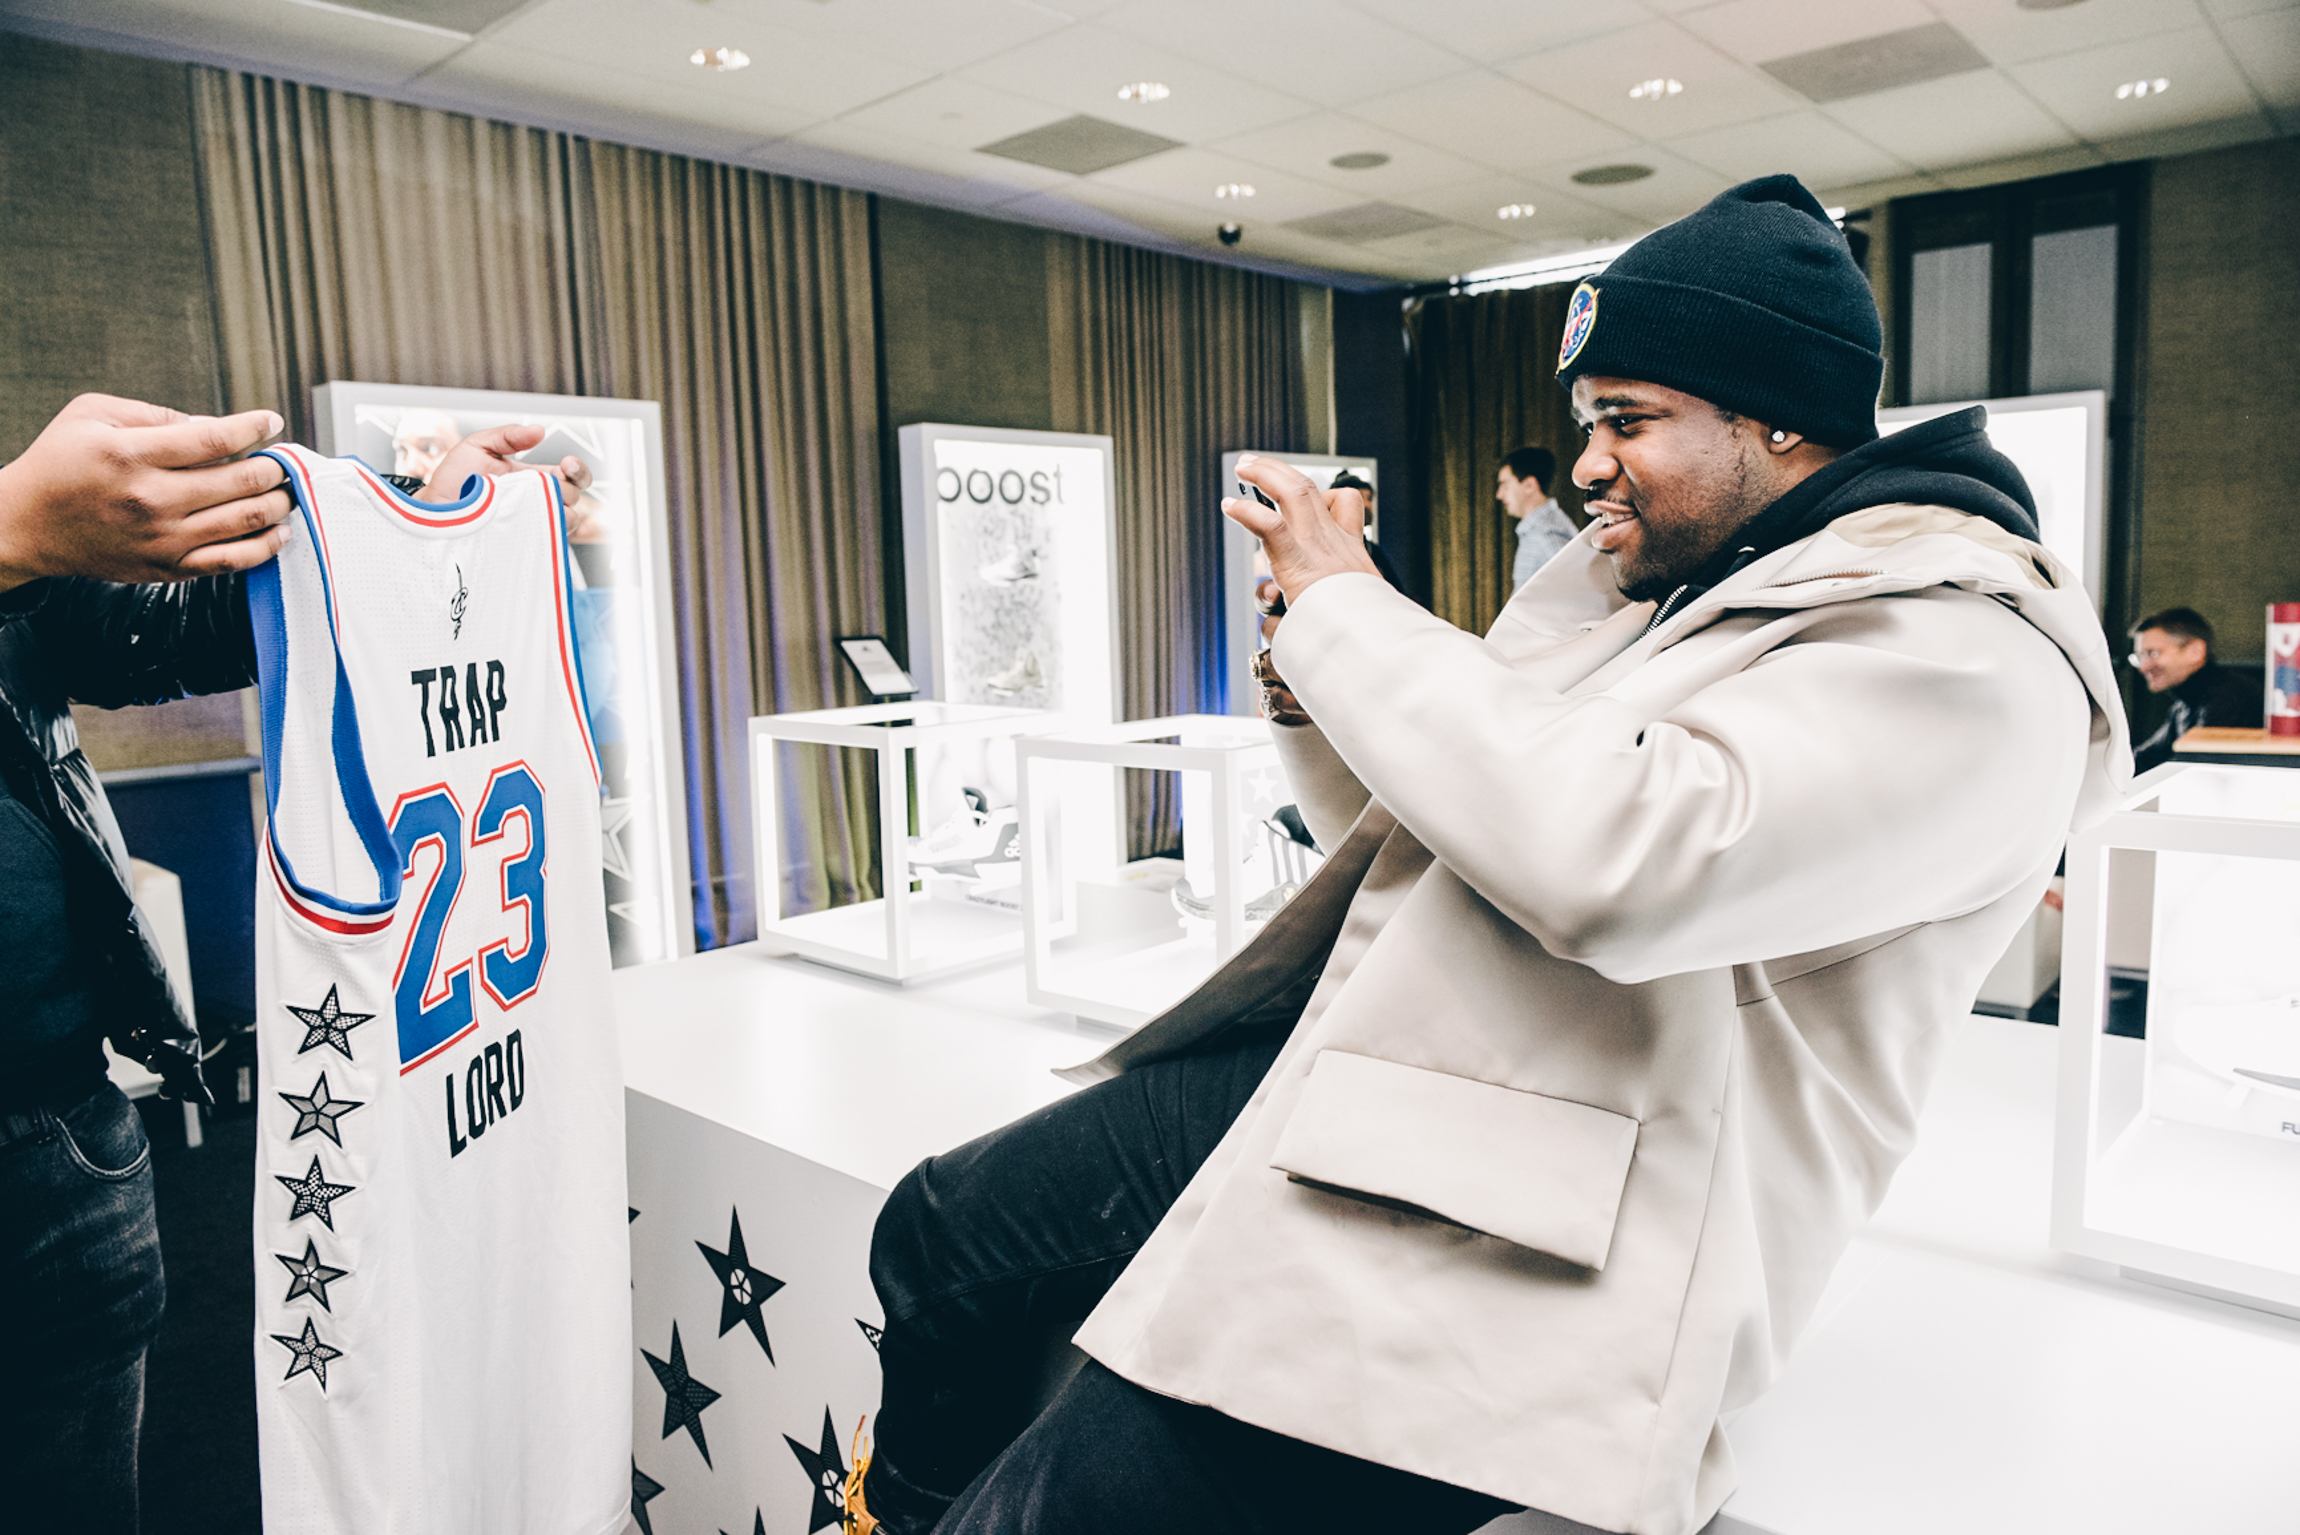 A$AP Ferg and his custom All Star jersey